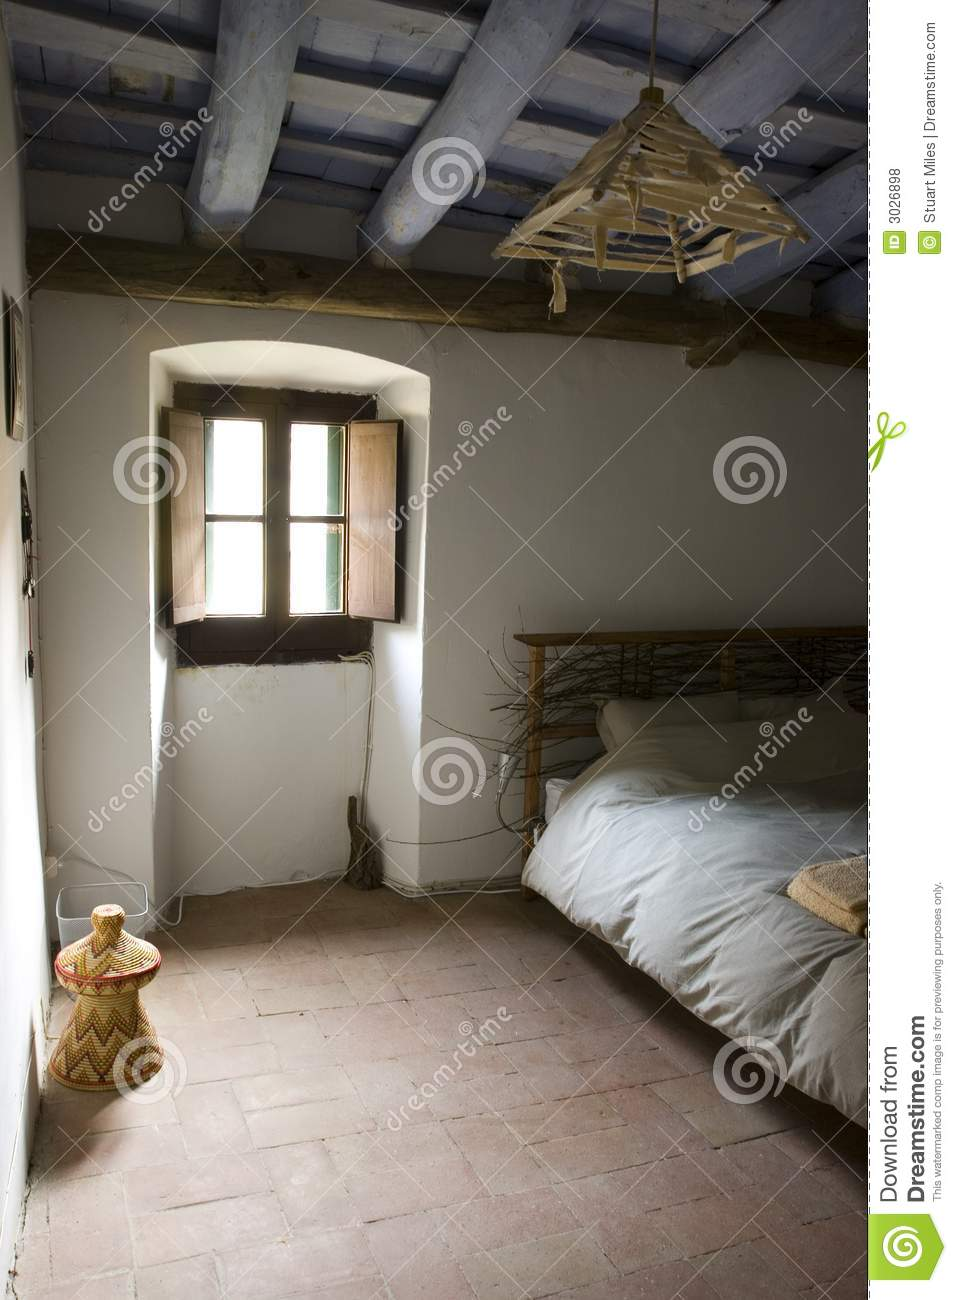 old bedroom royalty free stock photos image 3026898